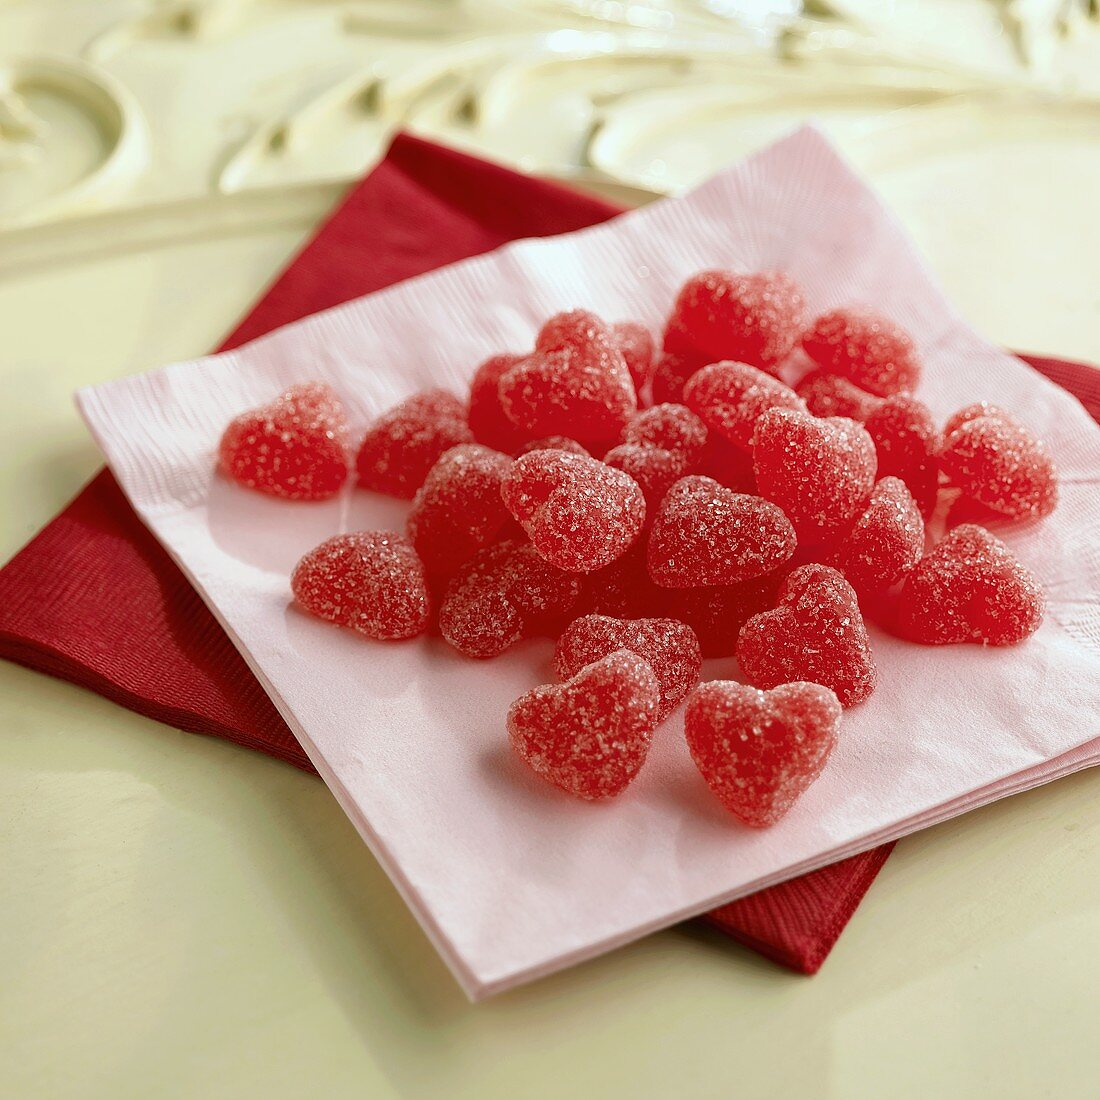 Red heart-shaped fruit jelly sweets